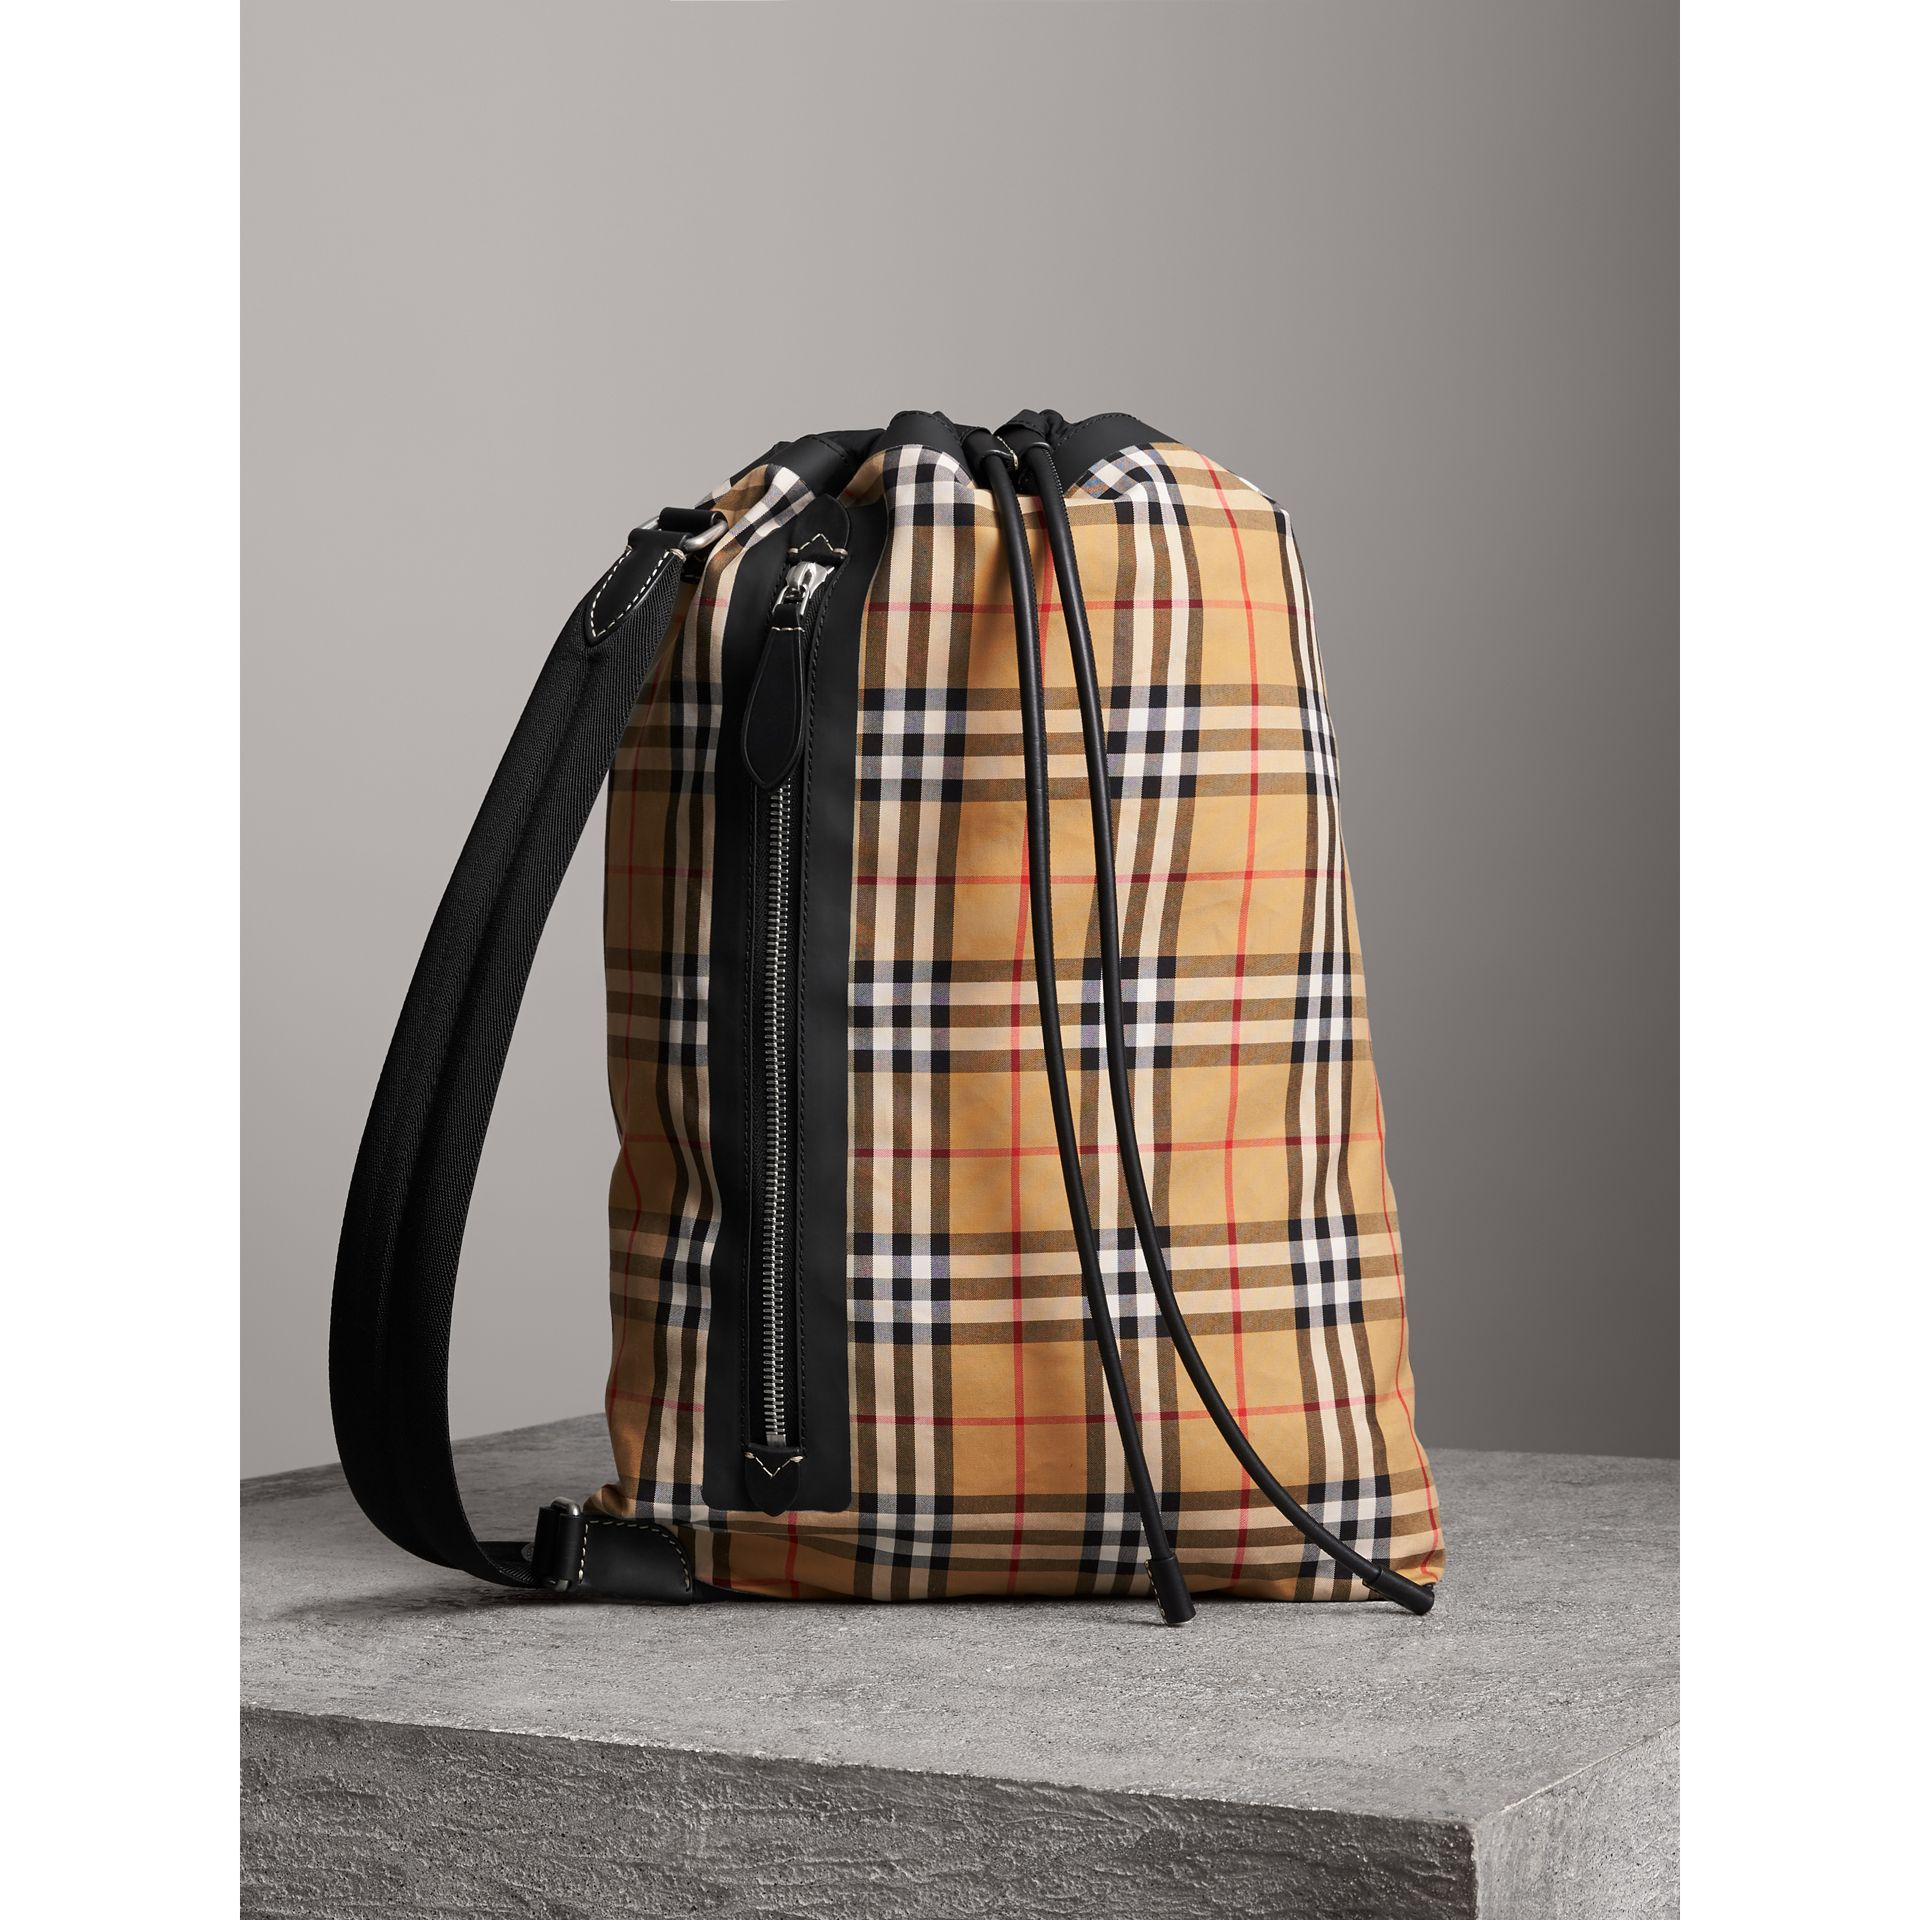 Sac polochon moyen en coton à motif Vintage check (Jaune Antique) | Burberry - photo de la galerie 6